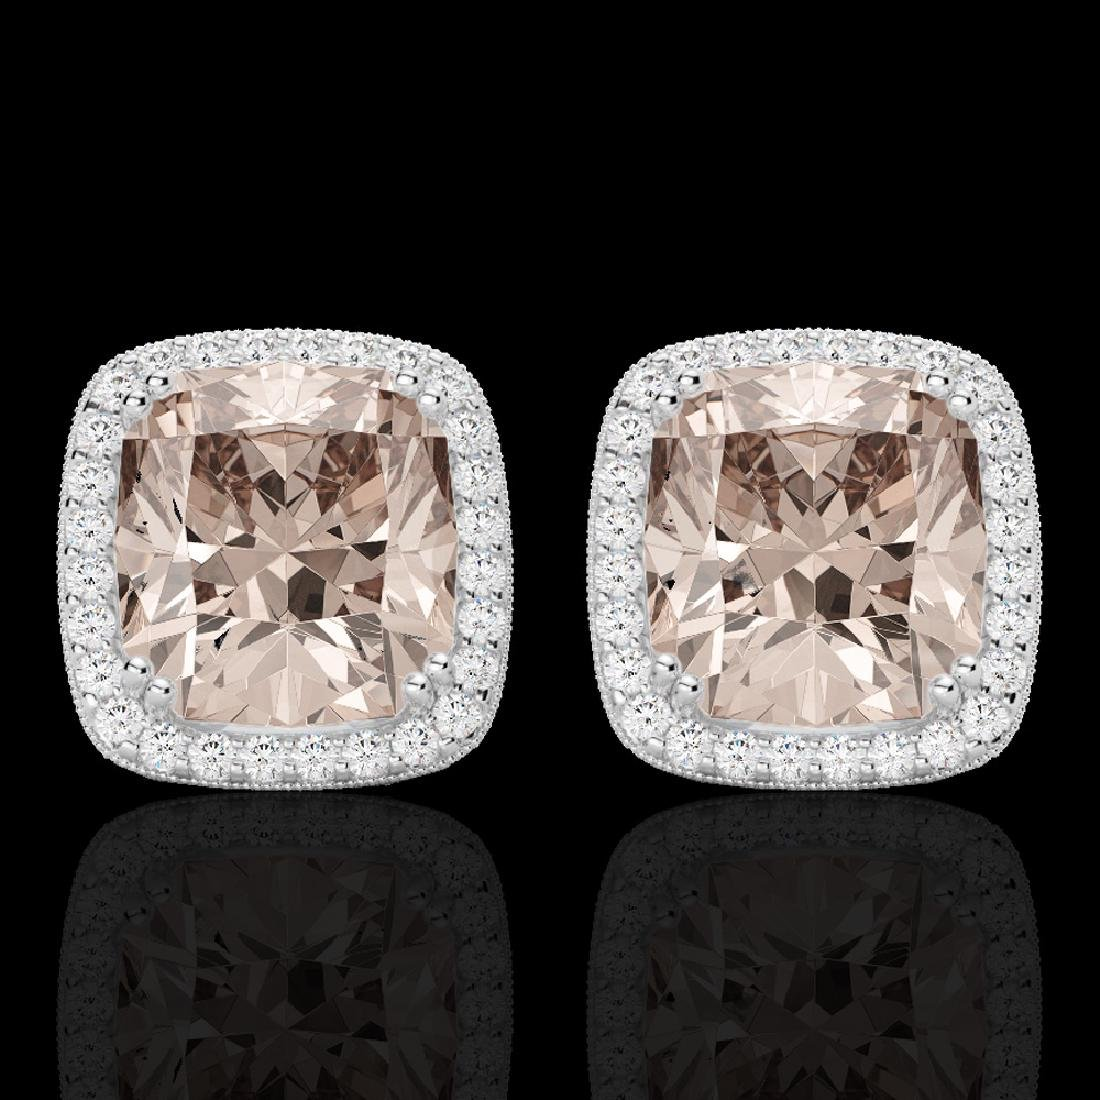 6 CTW Morganite & Micro Pave VS/SI Diamond Halo